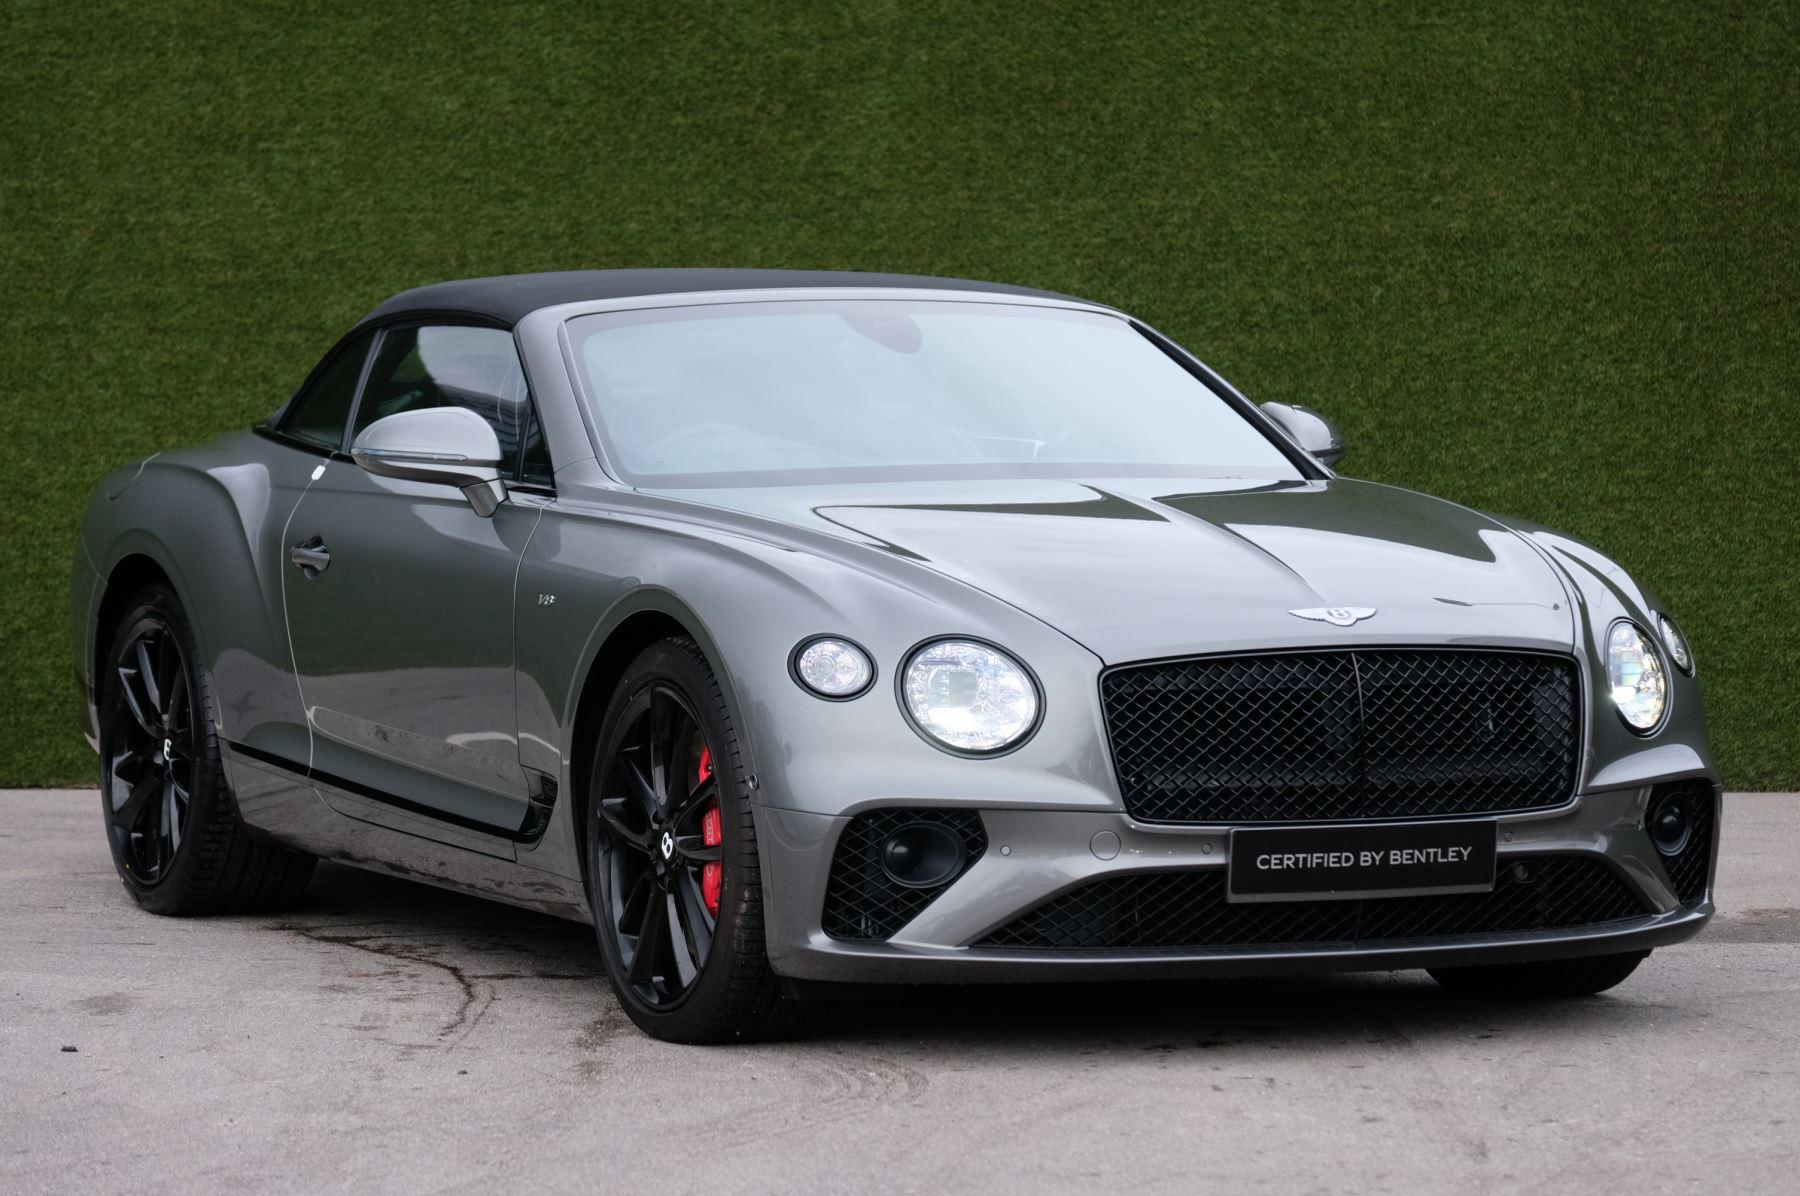 Bentley Continental GTC 0.0 4.0 V8 Mulliner Driving Spec Auto Convertible Petrol Granite